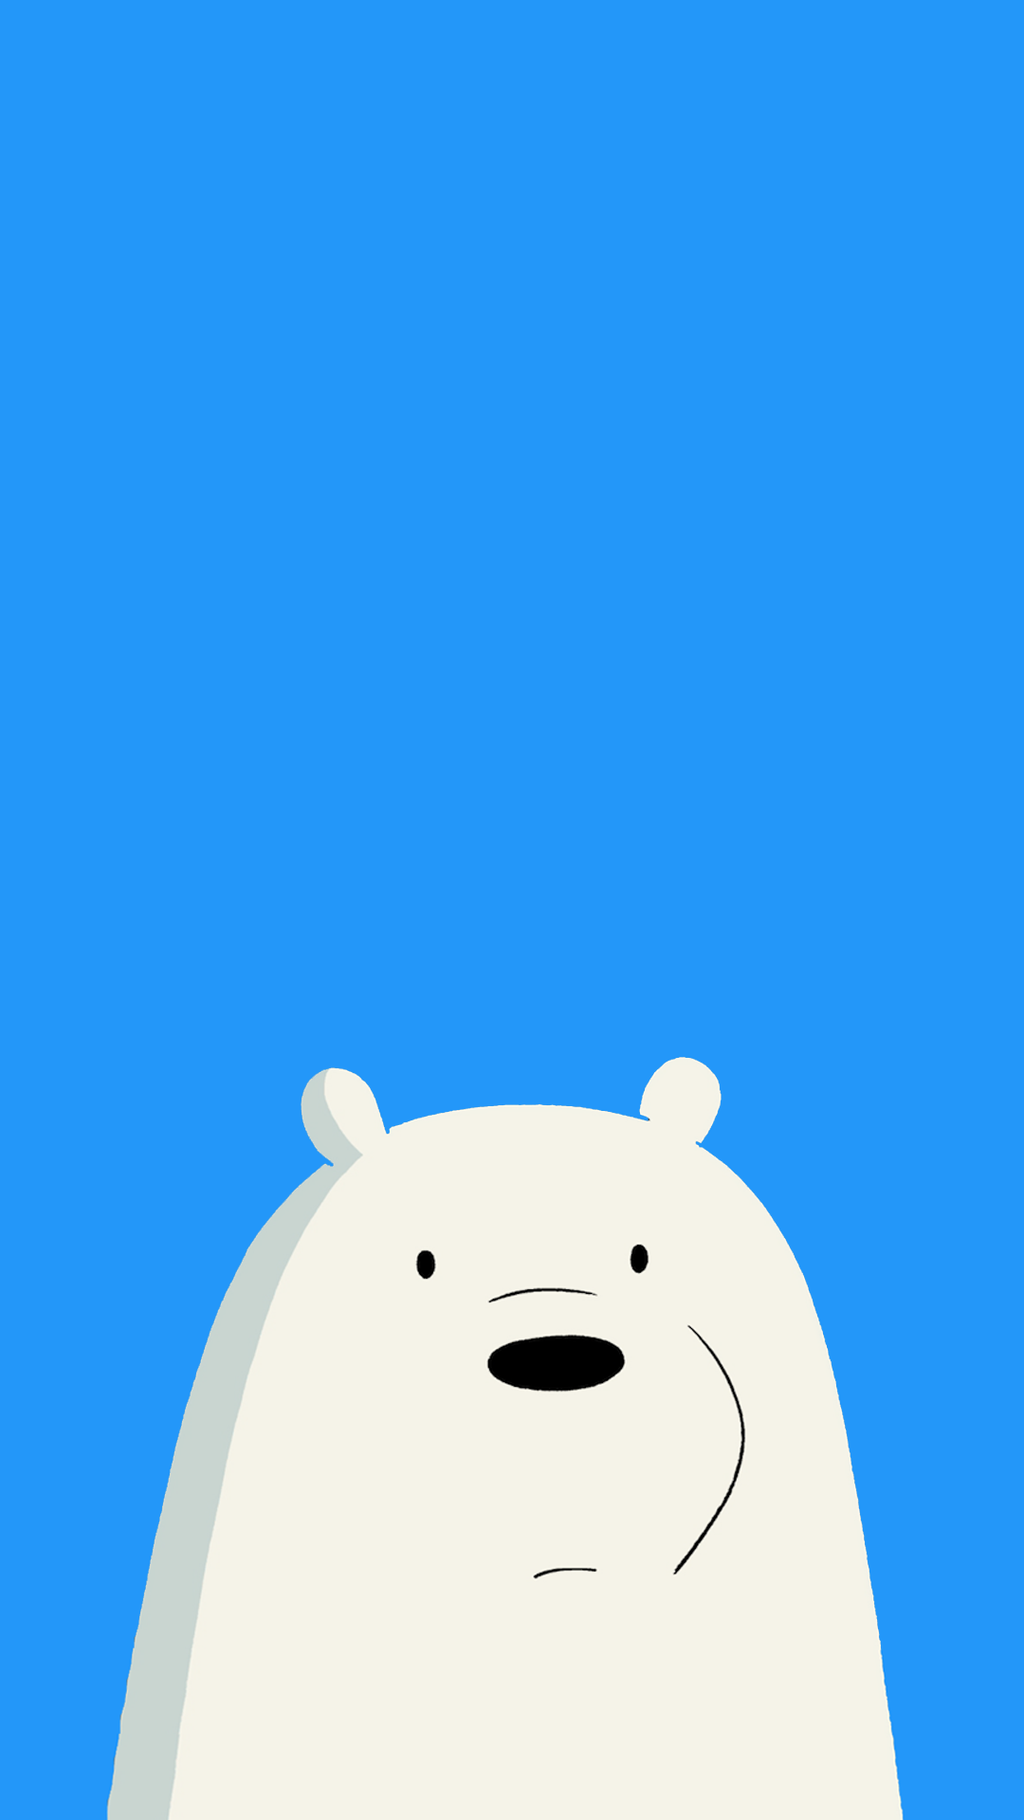 50 We Bare Bears Iphone Wallpaper On Wallpapersafari